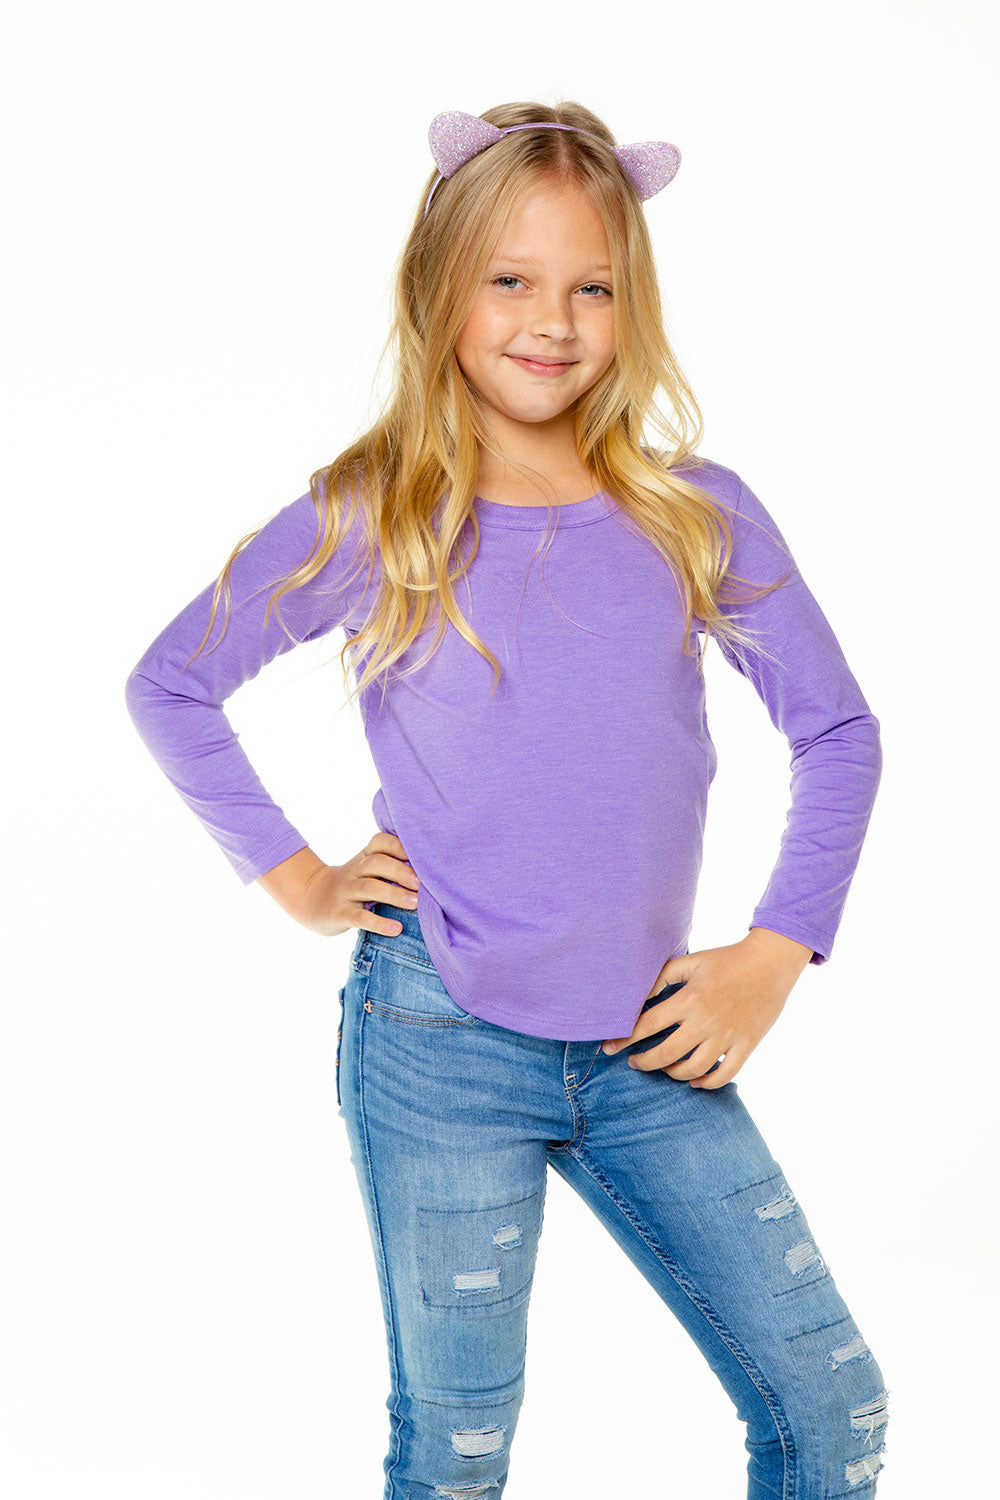 Girls Recycled Vintage Jersey Long Sleeve Scoop Back Shirttail RECYCLED chaserbrand4.myshopify.com